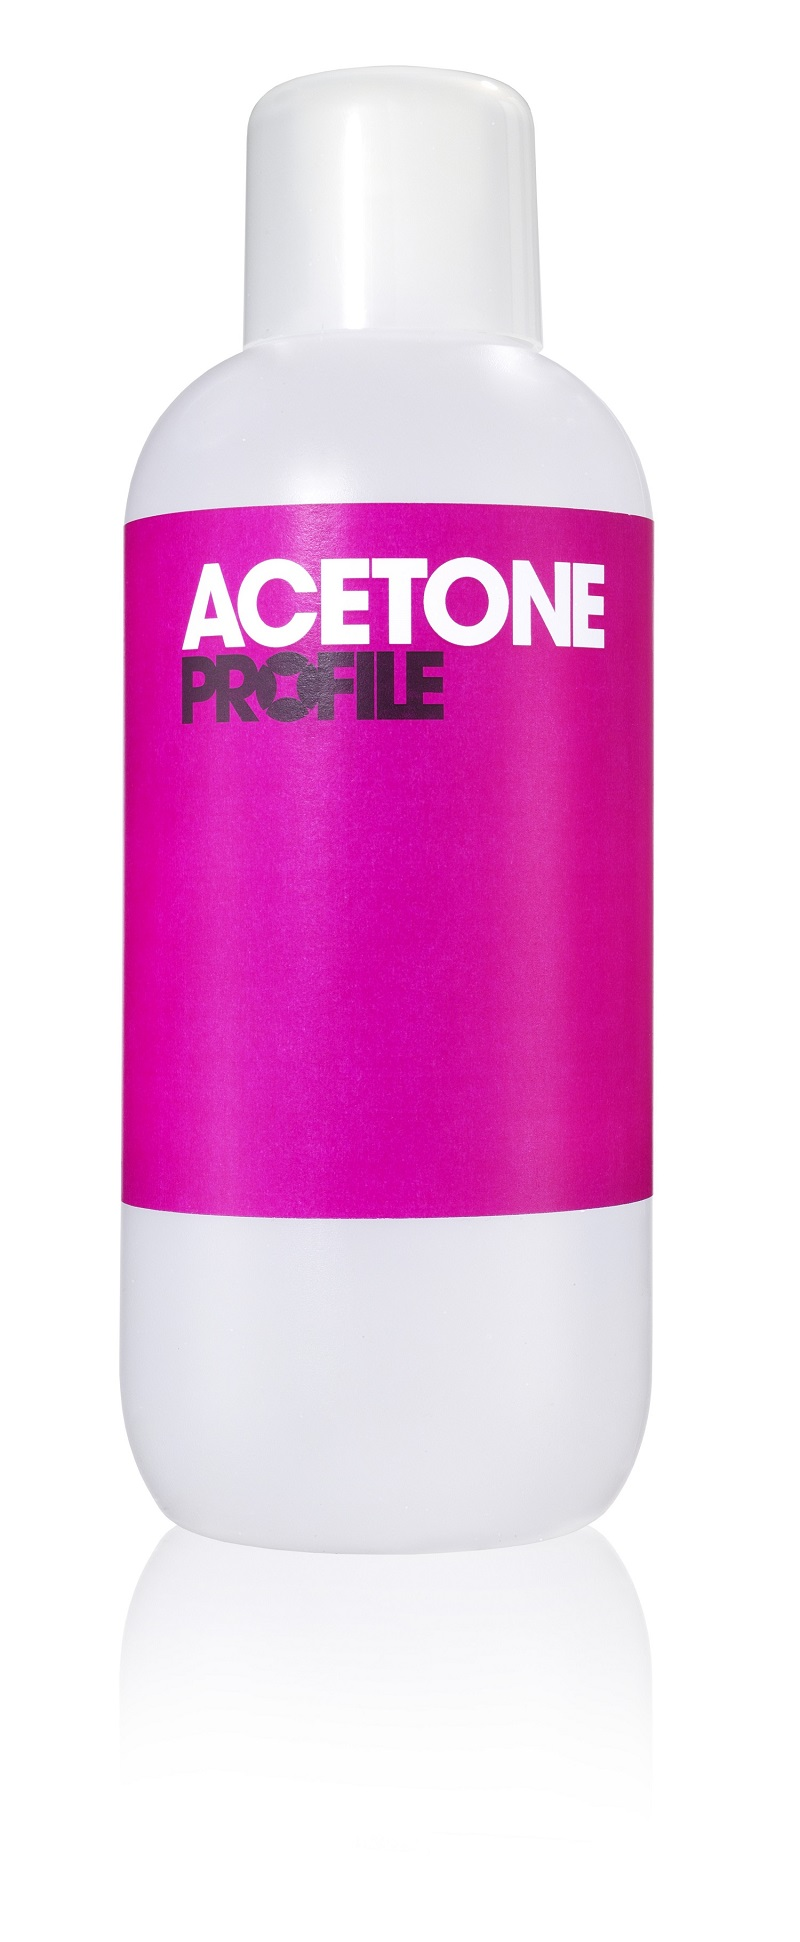 how to use acetone to remove gel nails